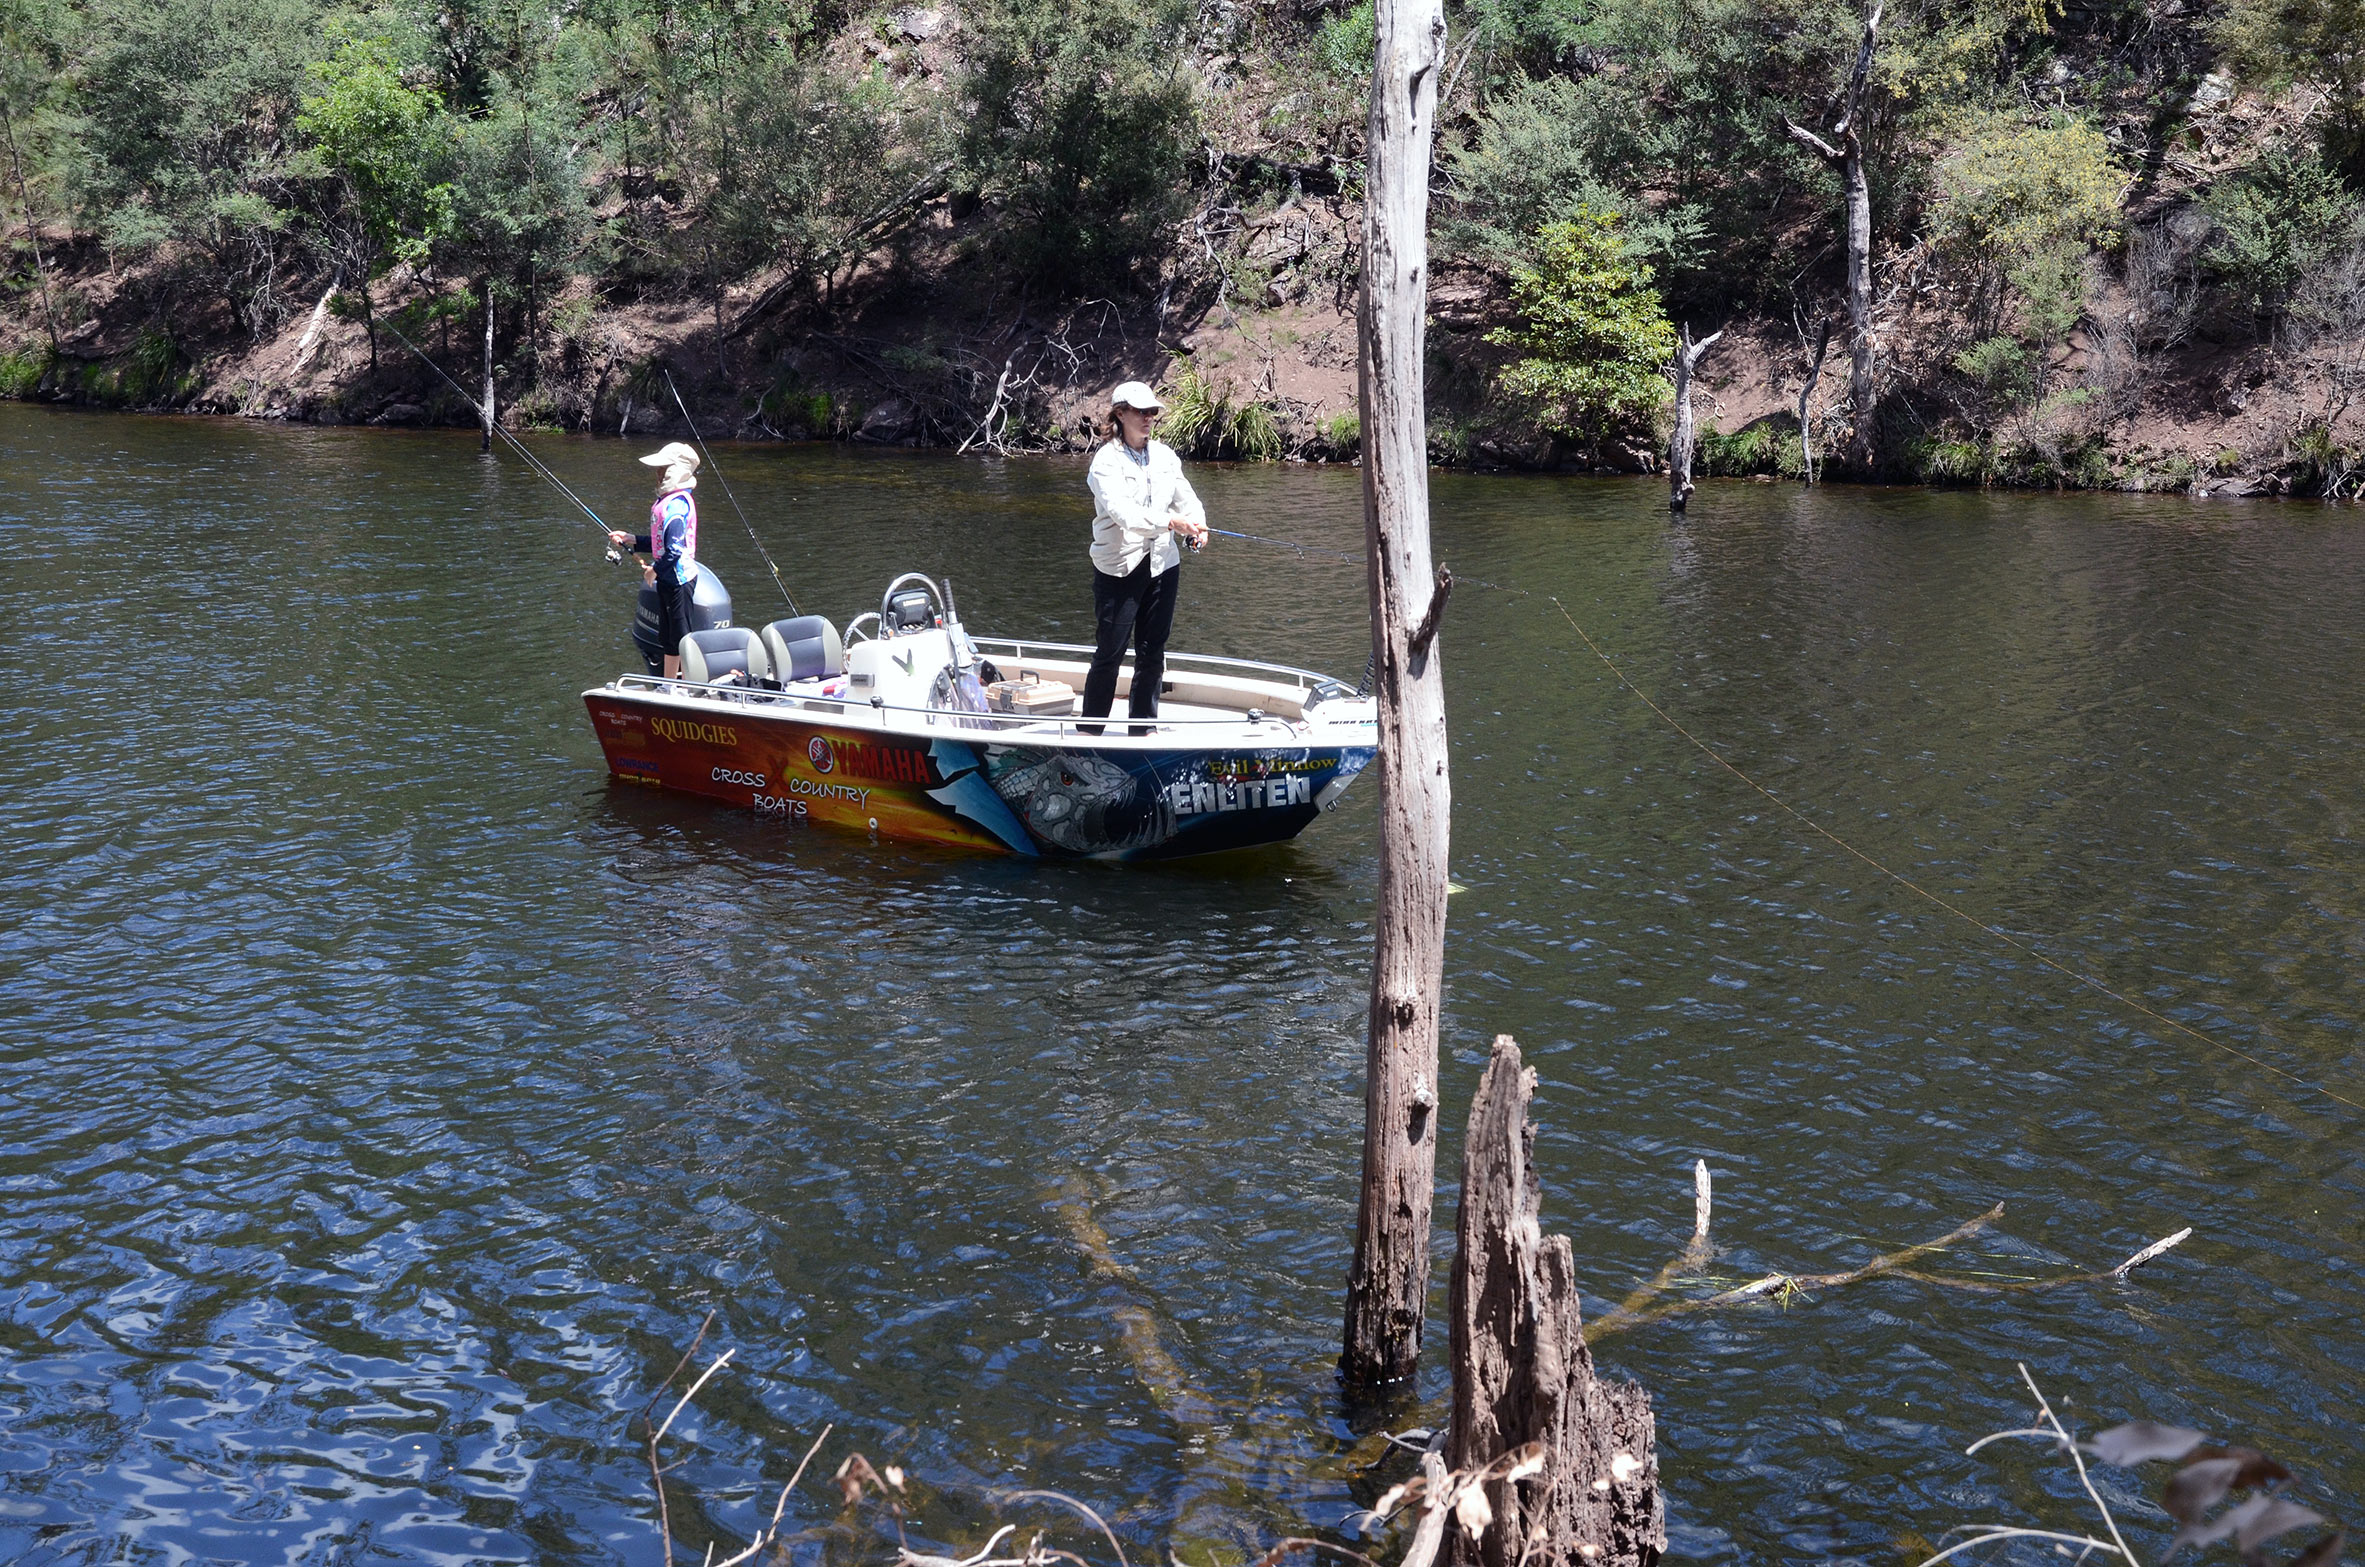 There's plenty of bank-side structure to fish, regardless of the water level.